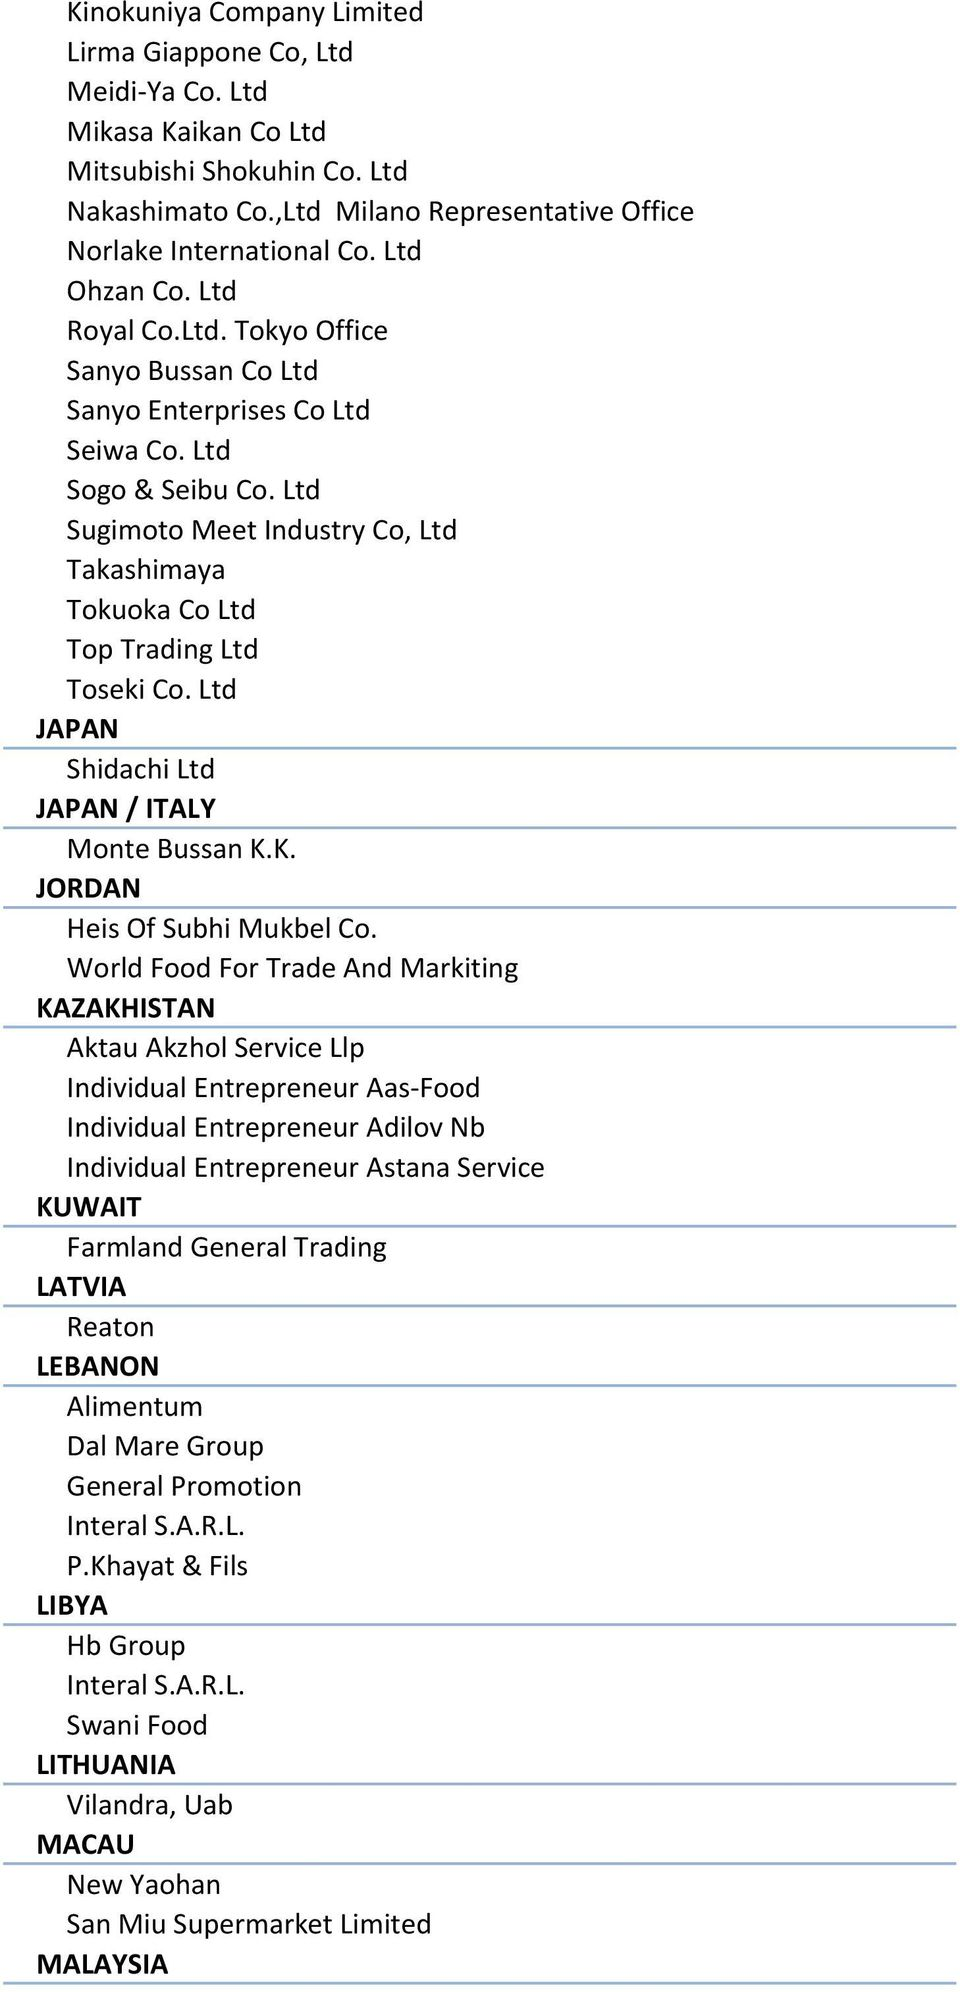 Ltd Sugimoto Meet Industry Co, Ltd Takashimaya Tokuoka Co Ltd Top Trading Ltd Toseki Co. Ltd JAPAN Shidachi Ltd JAPAN / ITALY Monte Bussan K.K. JORDAN Heis Of Subhi Mukbel Co.